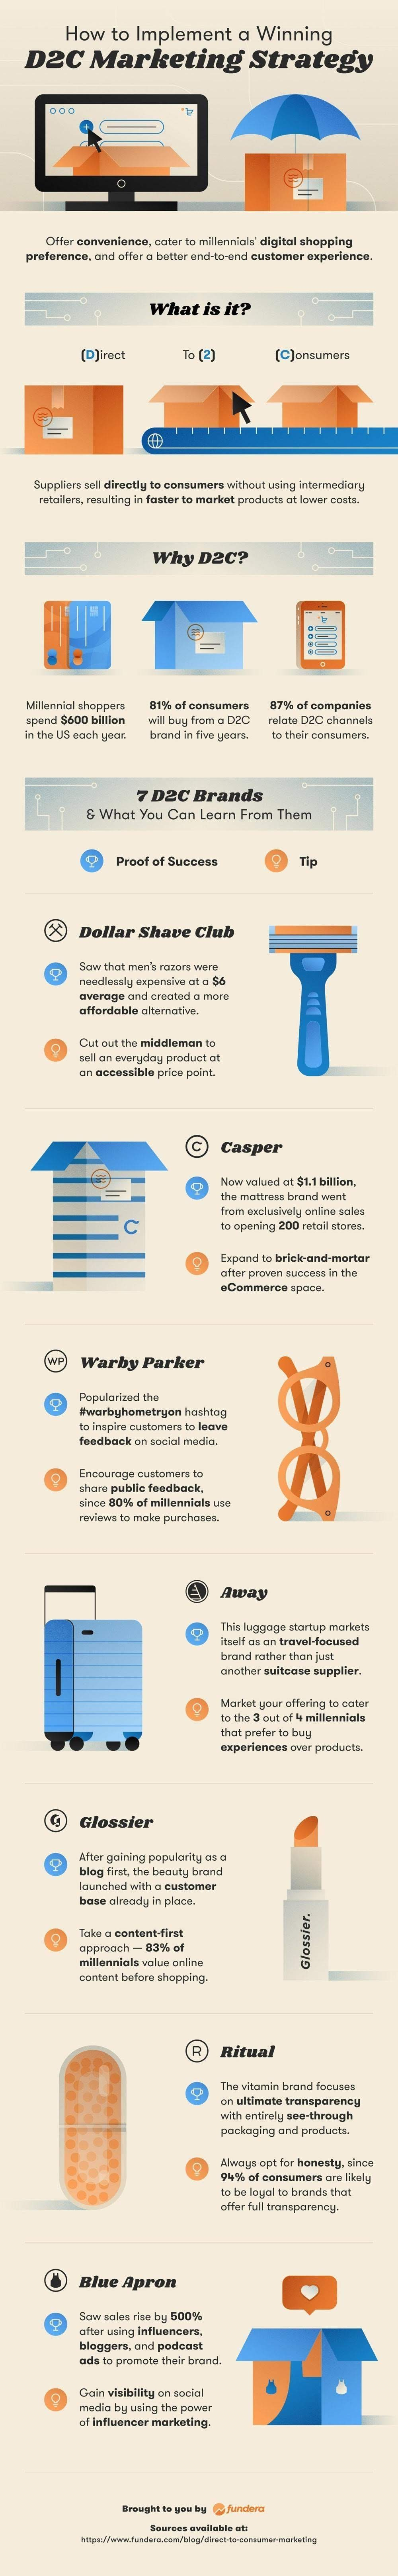 What Is D2C Marketing and Why Do Millennials Love It So Much? #infographic